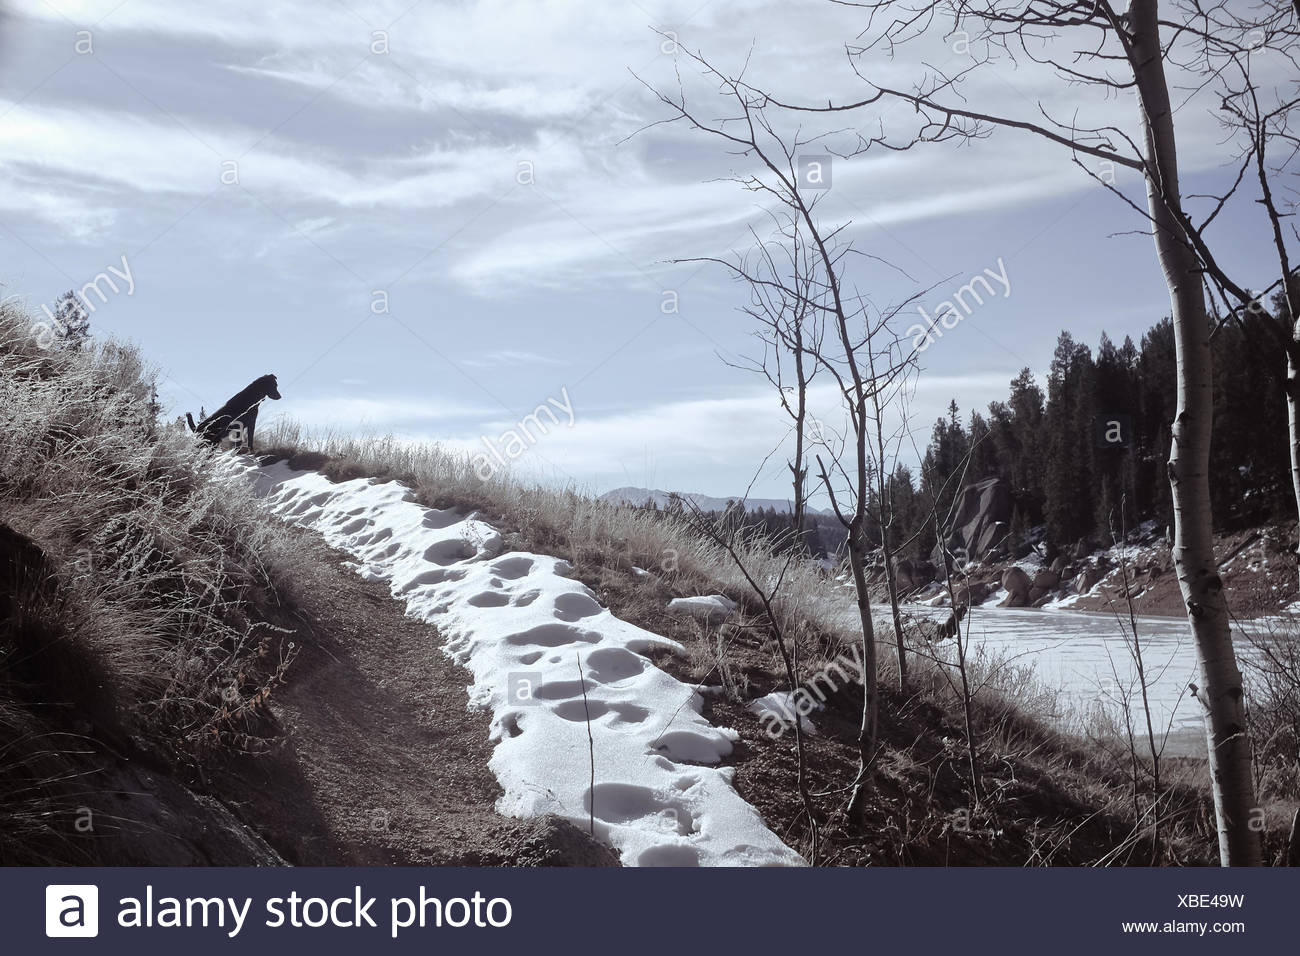 Dog sitting on footpath, Colorado, America, USA - Stock Image